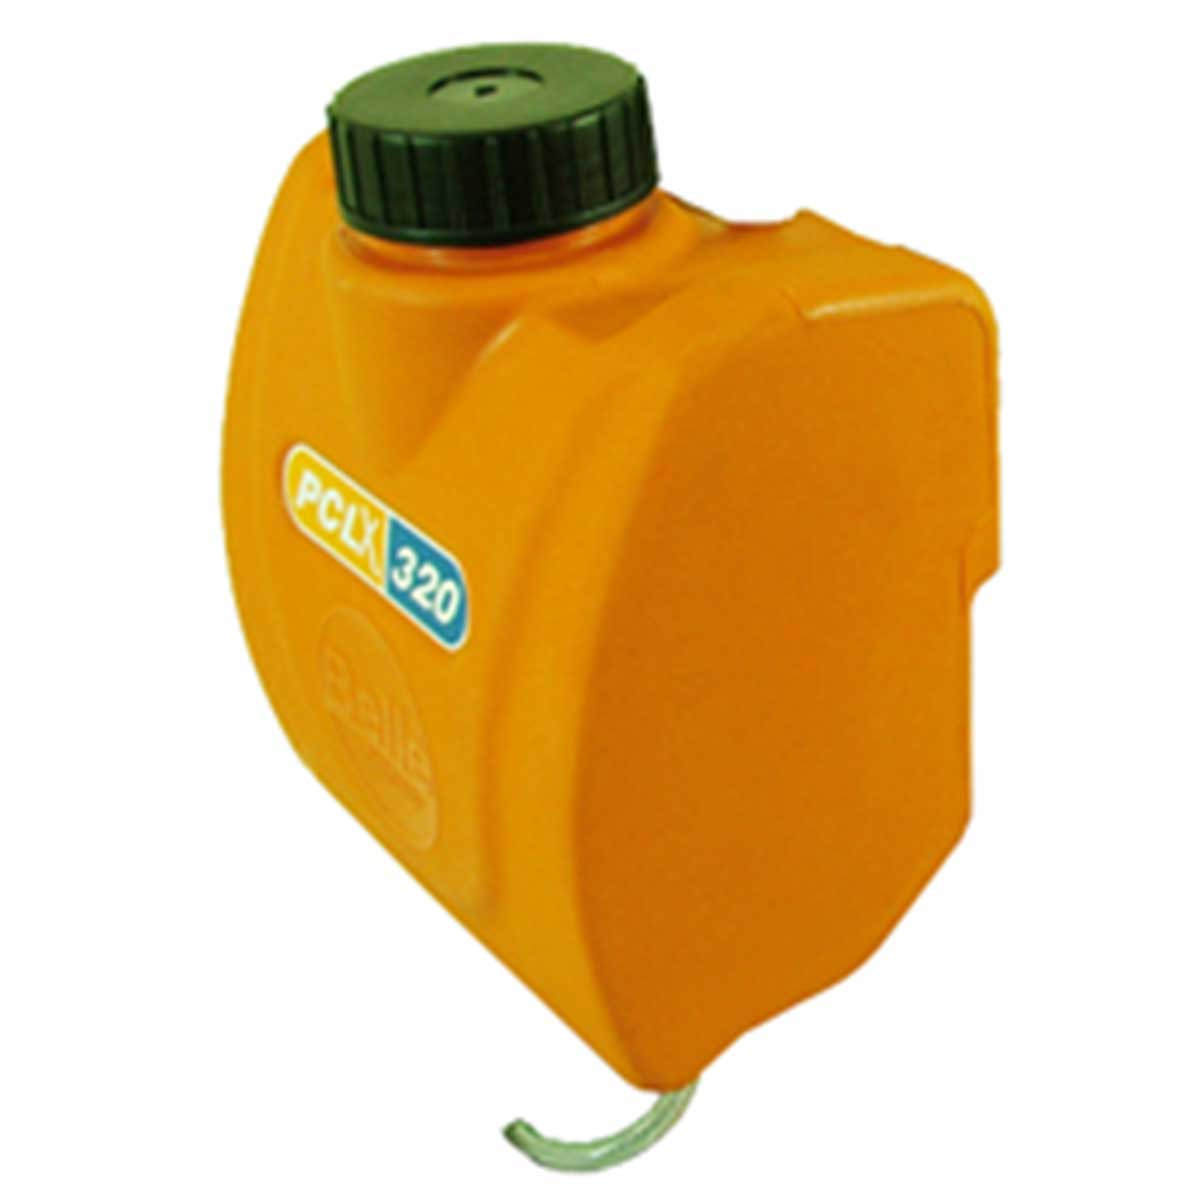 Altrad Water Spray Kits compact